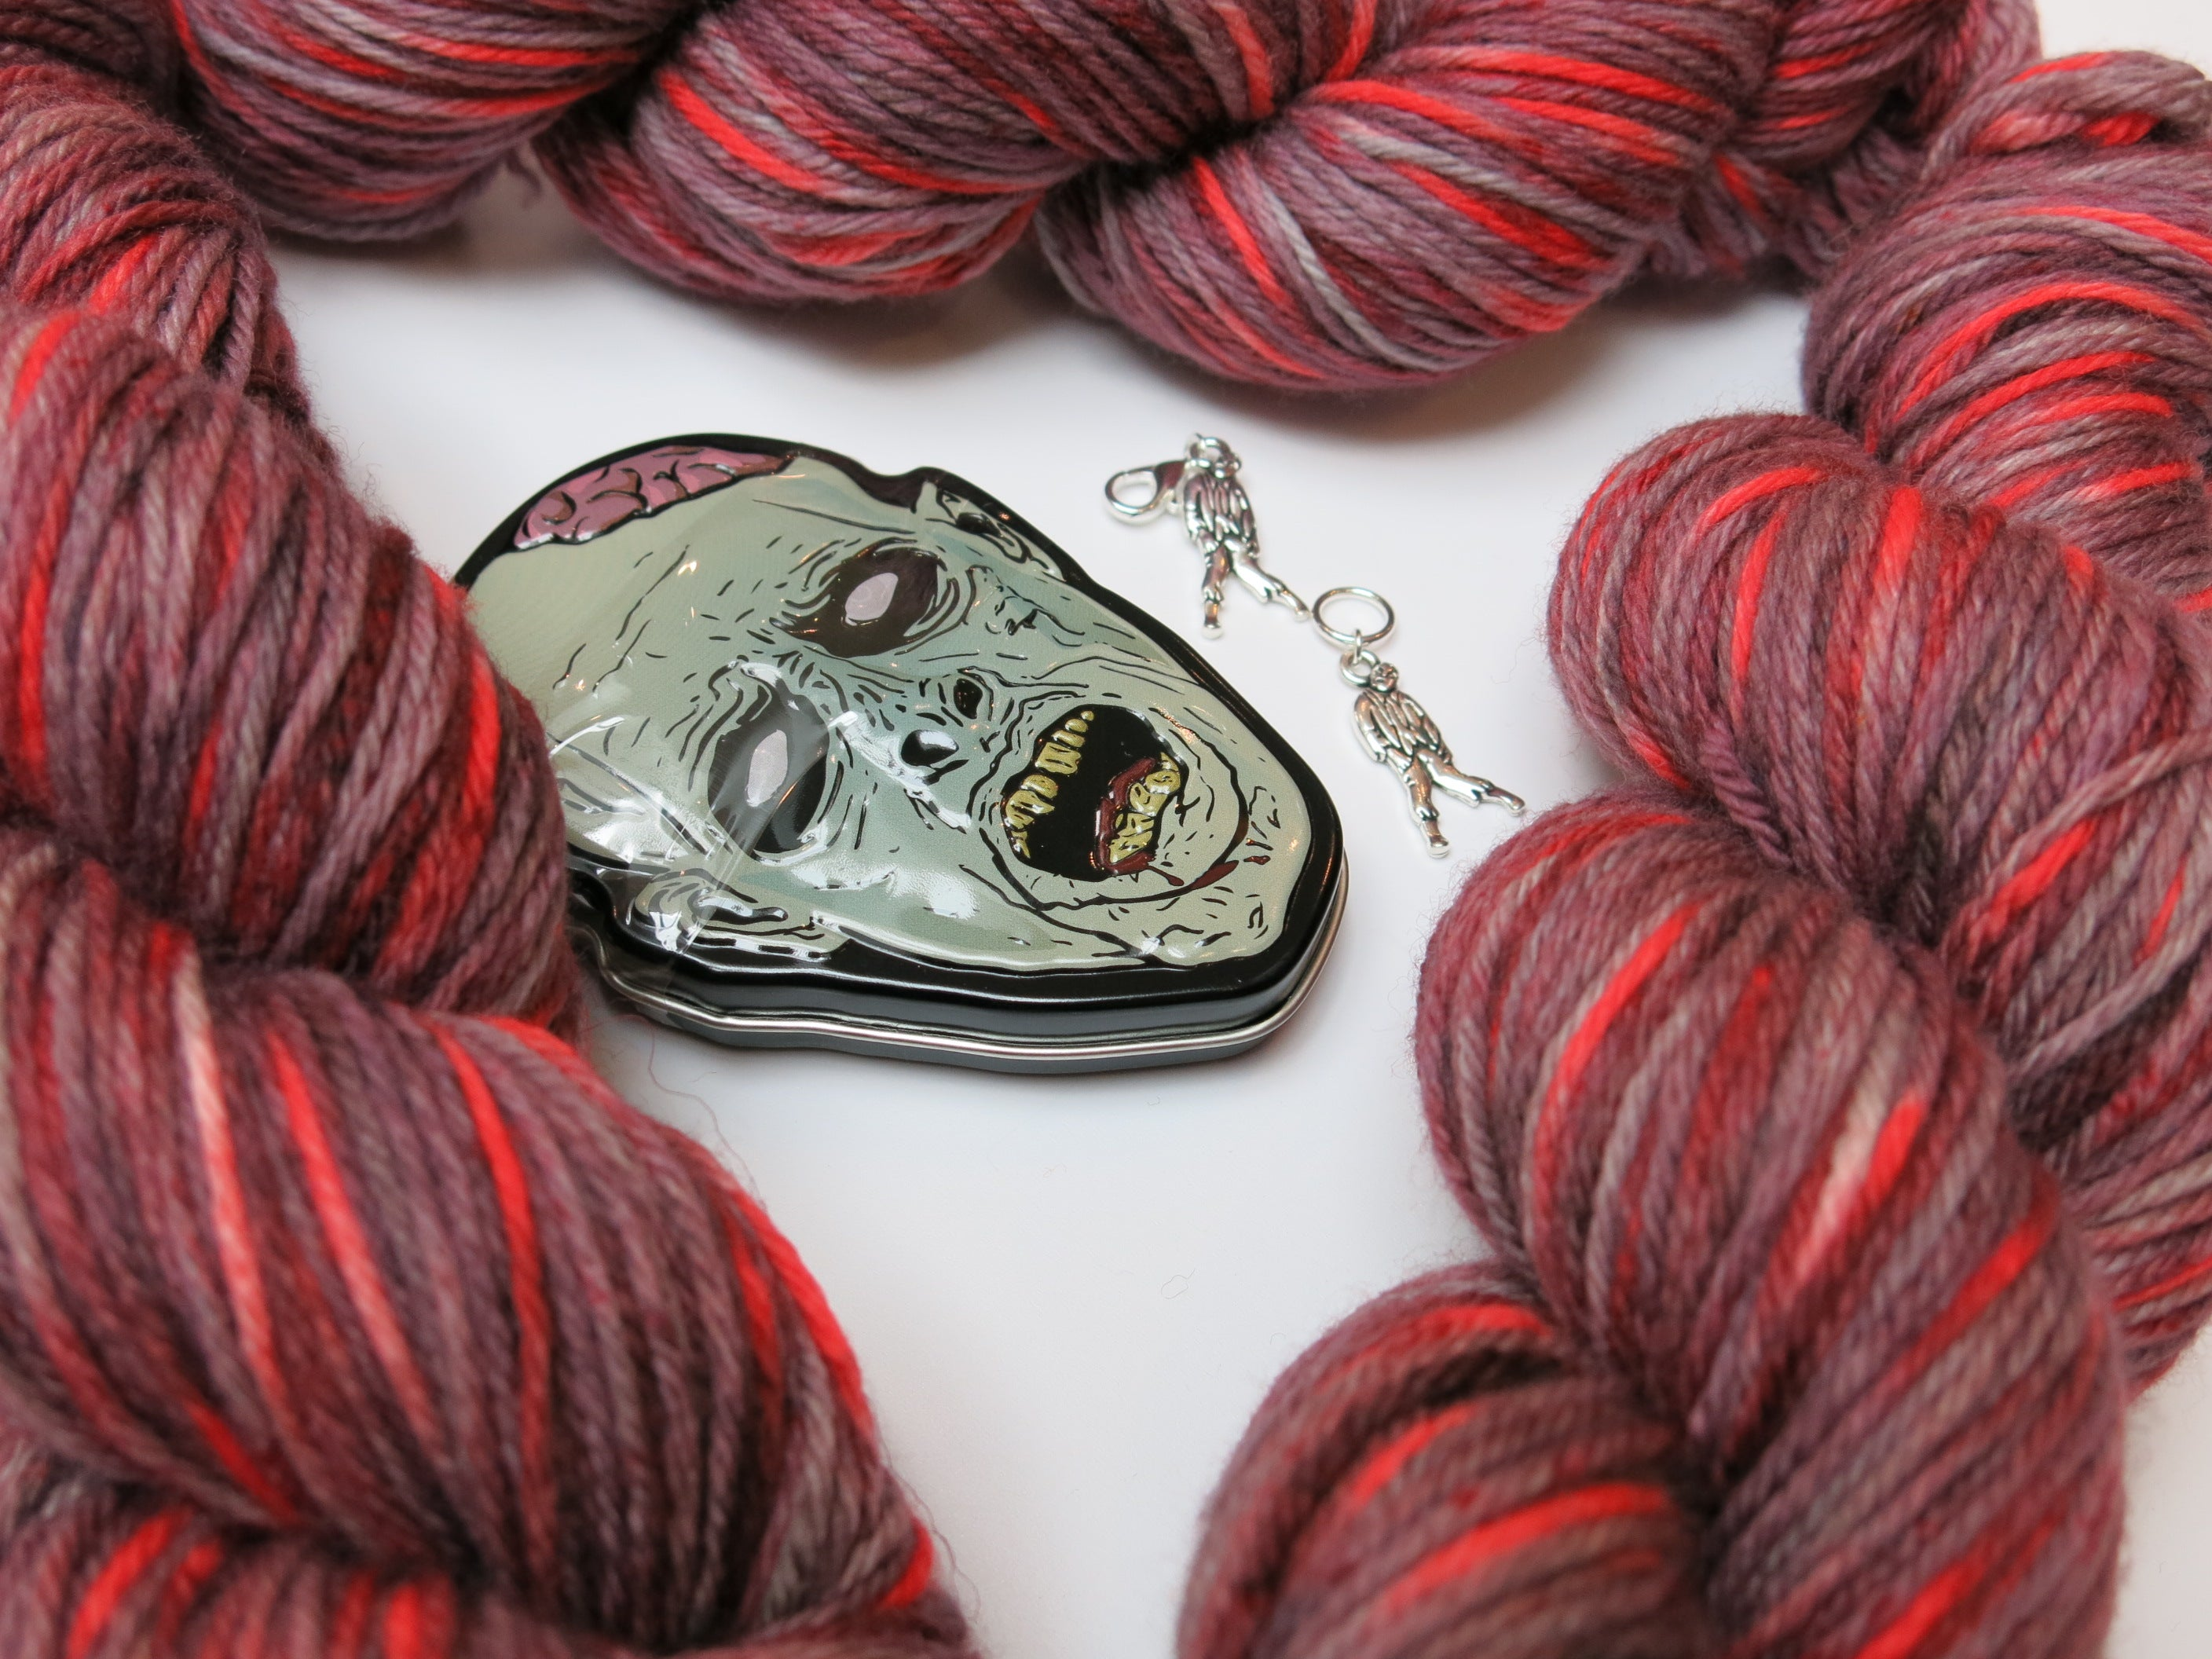 red zombie themed merino dk yarn skein and notions tin